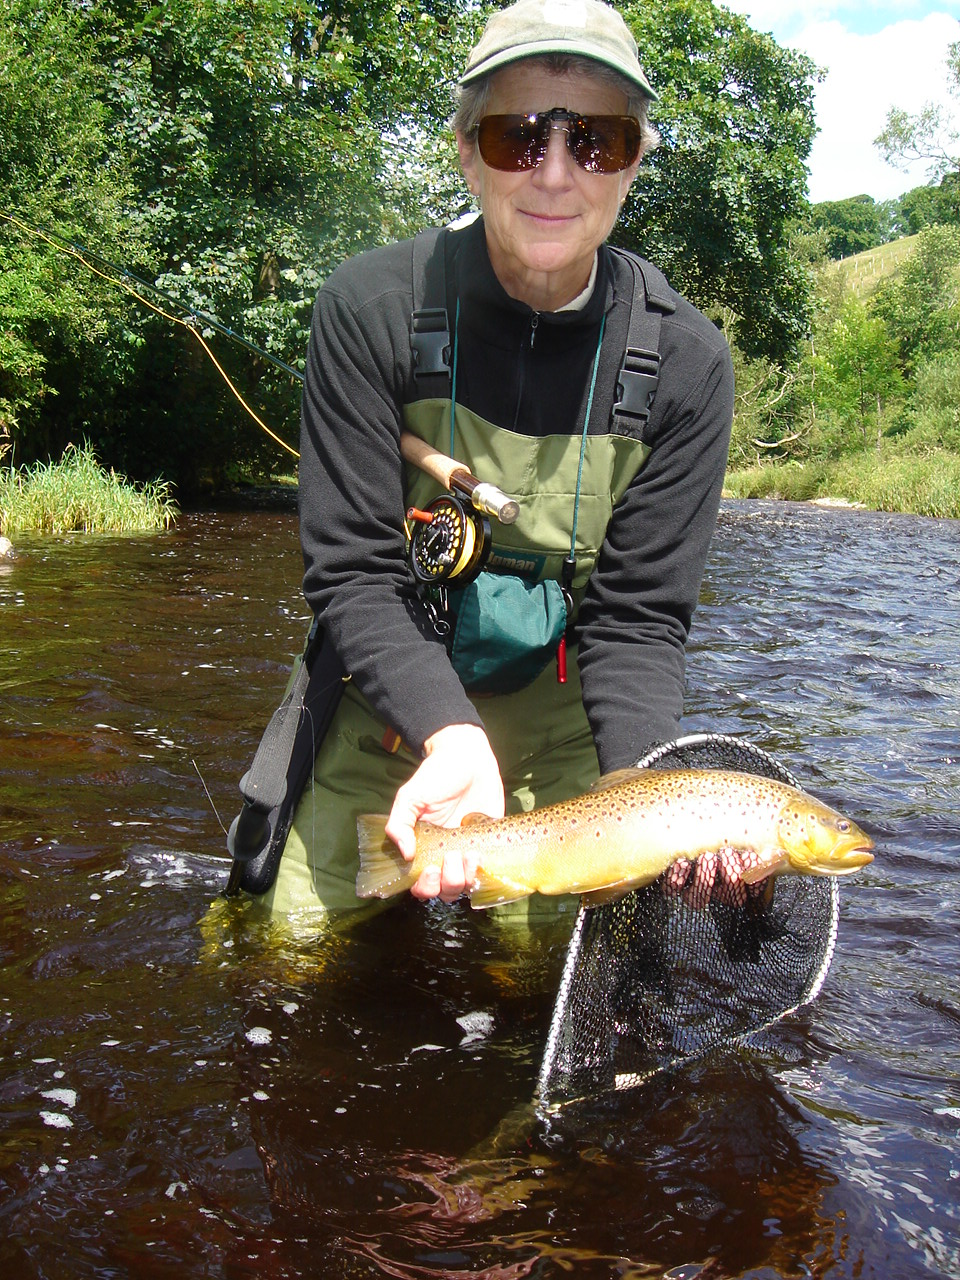 Fish of the Season, according to my guide.  his or mine?  forgot to ask.  British browns are a gorgeous golden brown, no two spot patterns anything alike.  for future recognition, no doubt.